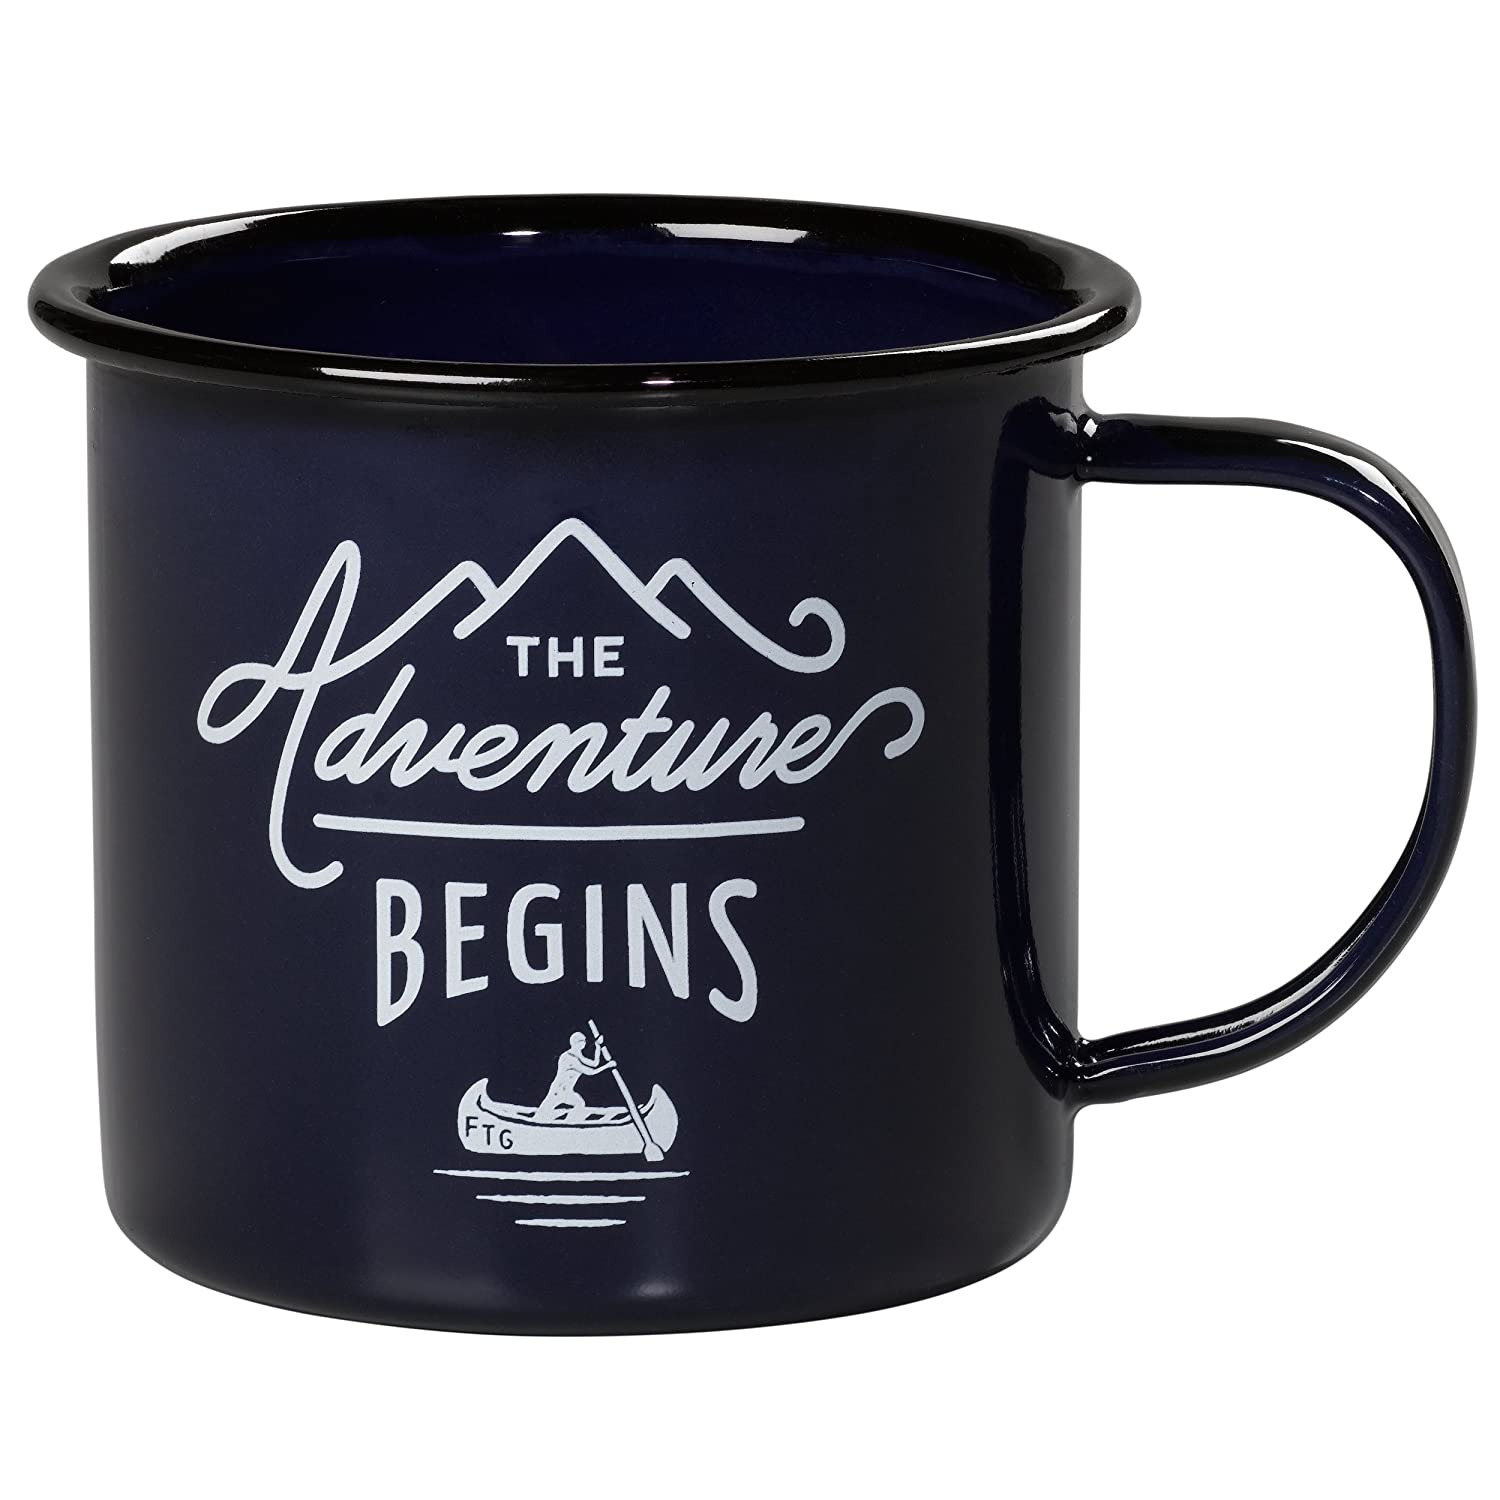 1e1a04f703e The Best Camping Coffee Gadgets Make Unique Gifts For Coffee Lovers ...